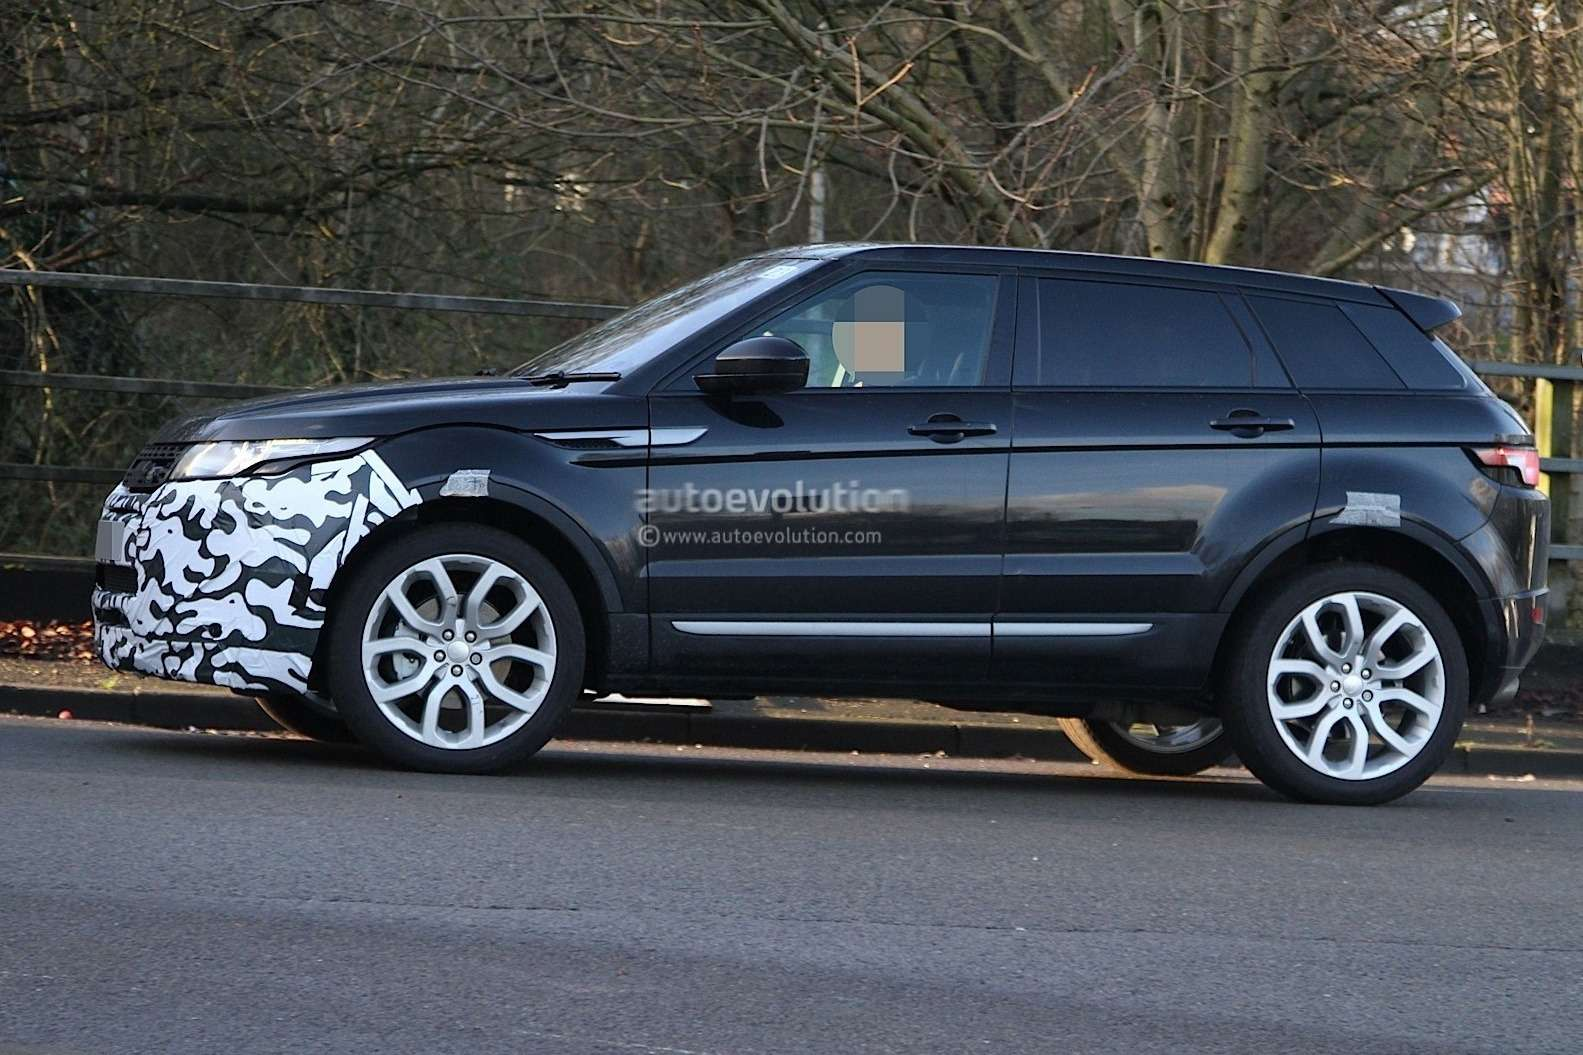 2016-range-rover-evoque-mid-life-facelift-spied-ingenium-diesel-engines-coming-to-us_5